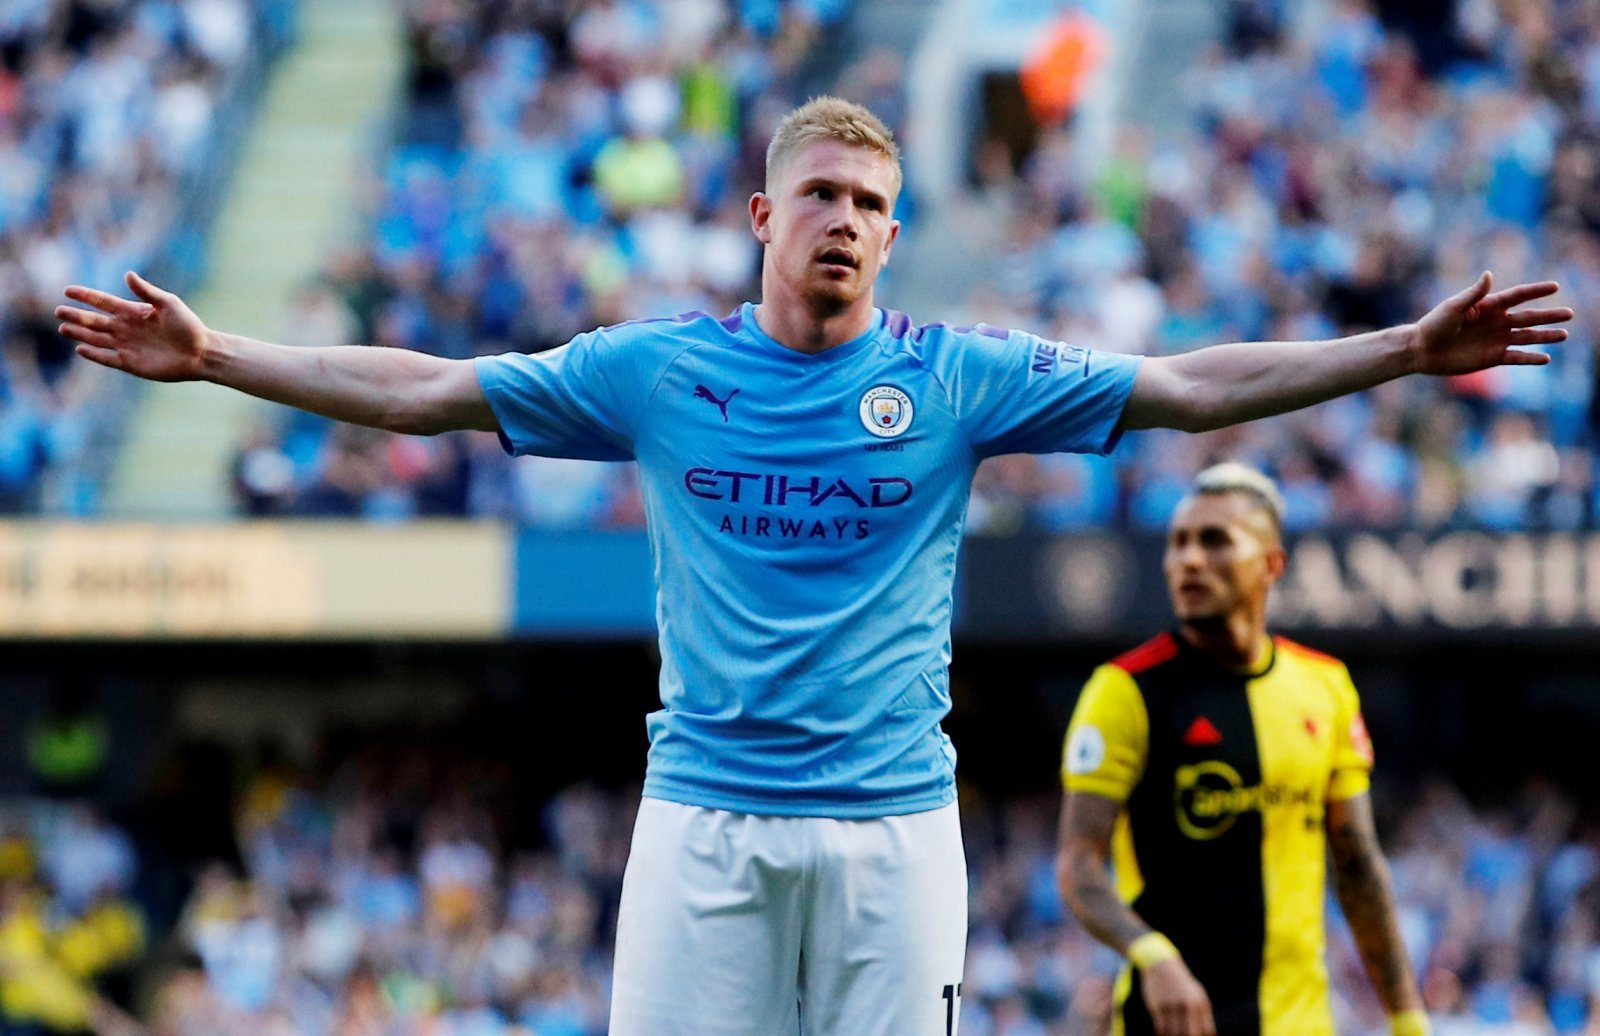 Manchester City: Fans have mixed opinions over Kevin De Bruyne's controversial Euros debate